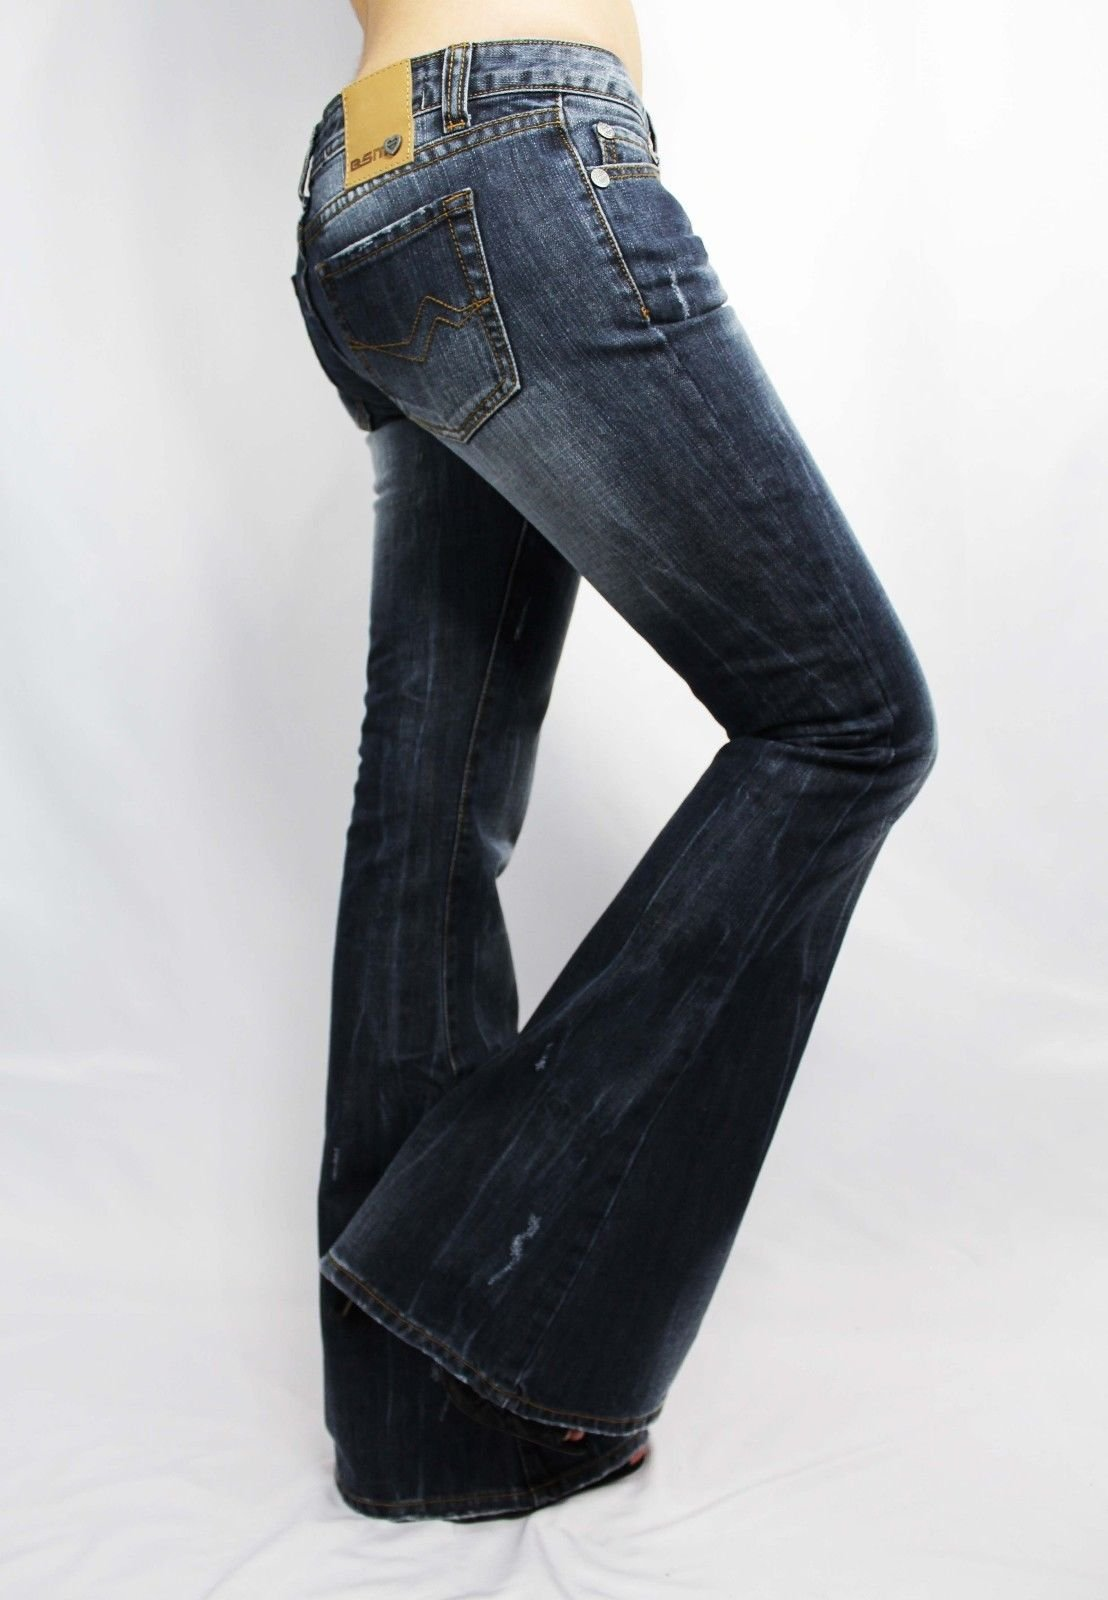 Jeans Women's Jeans Slim Boot Jeans in Medium Wash Faded Distressed Low Rise Boot Cut Jeans for Women US28 Run Small